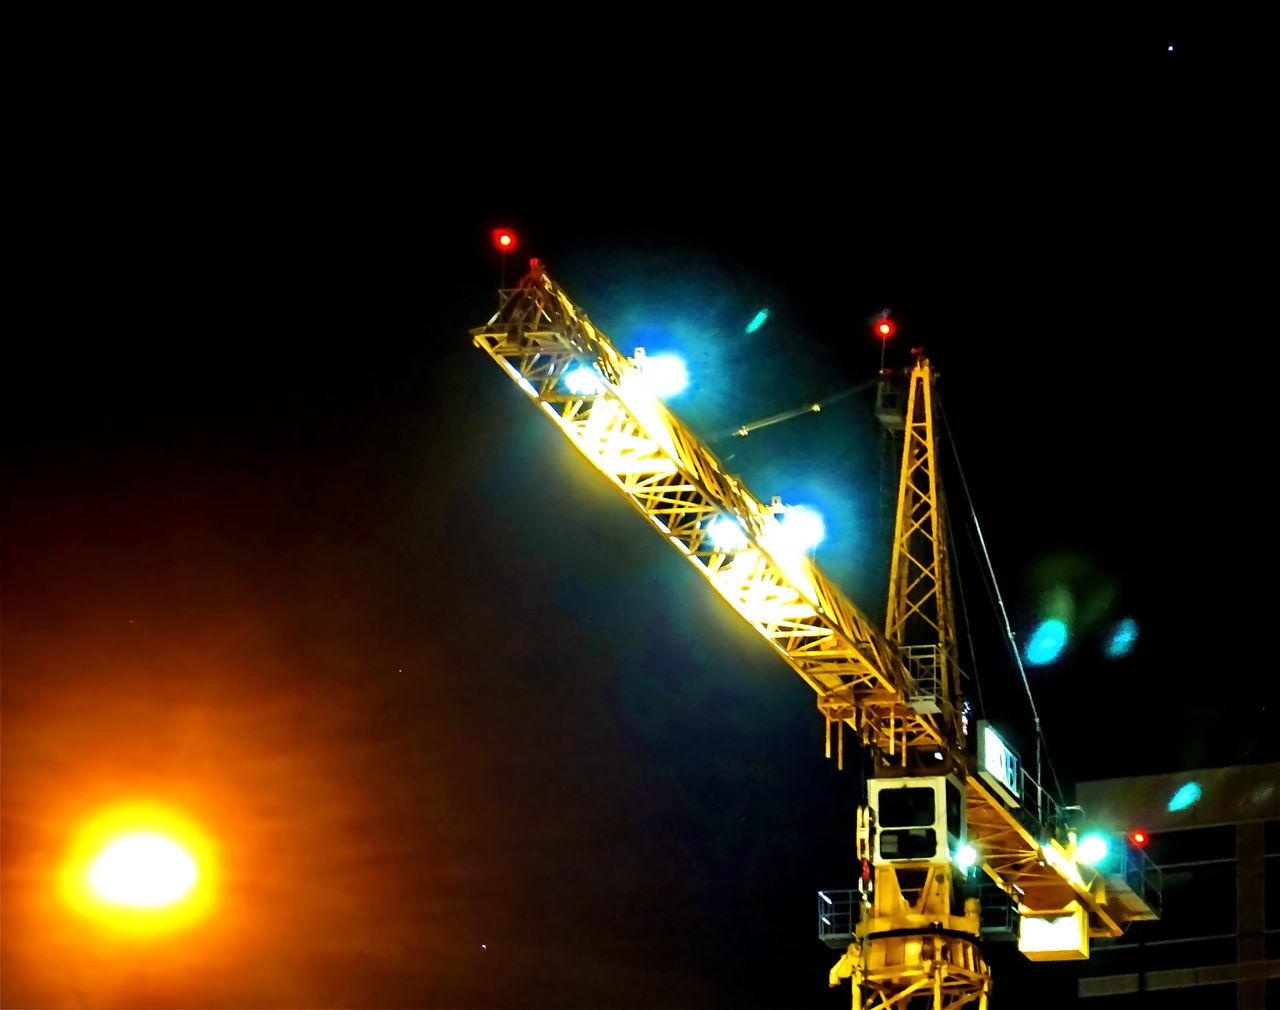 illuminated, night, transportation, low angle view, lighting equipment, lens flare, crane - construction machinery, mode of transport, no people, light beam, outdoors, freight transportation, street light, architecture, spotlight, clear sky, sky, city